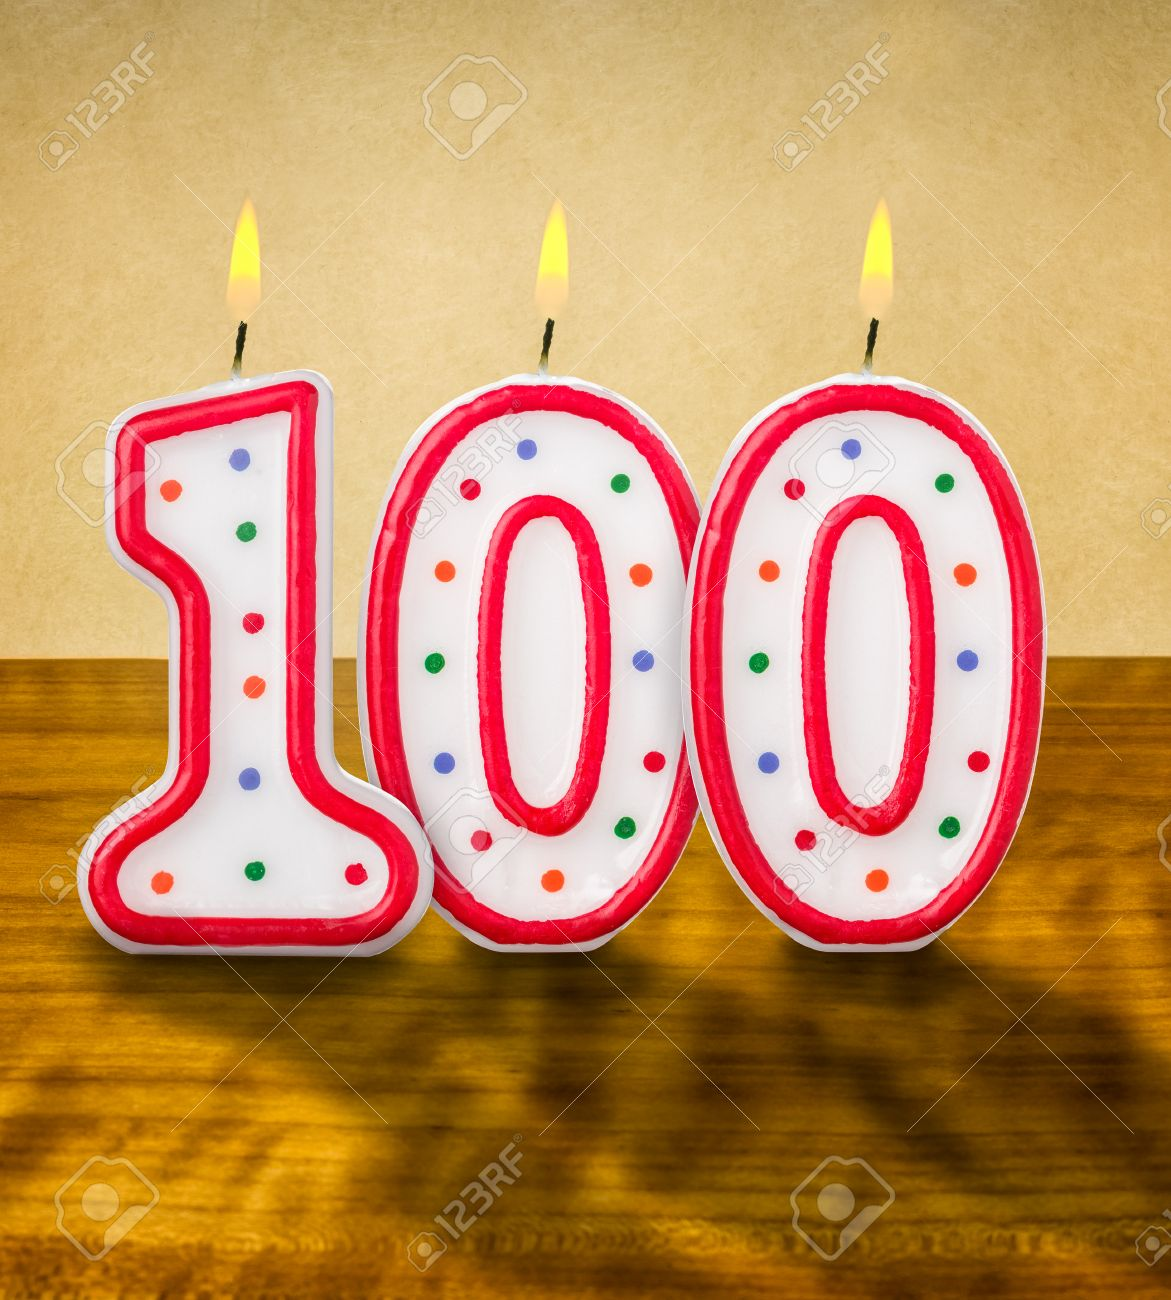 Burning Birthday Candles Number 100 Stock Photo